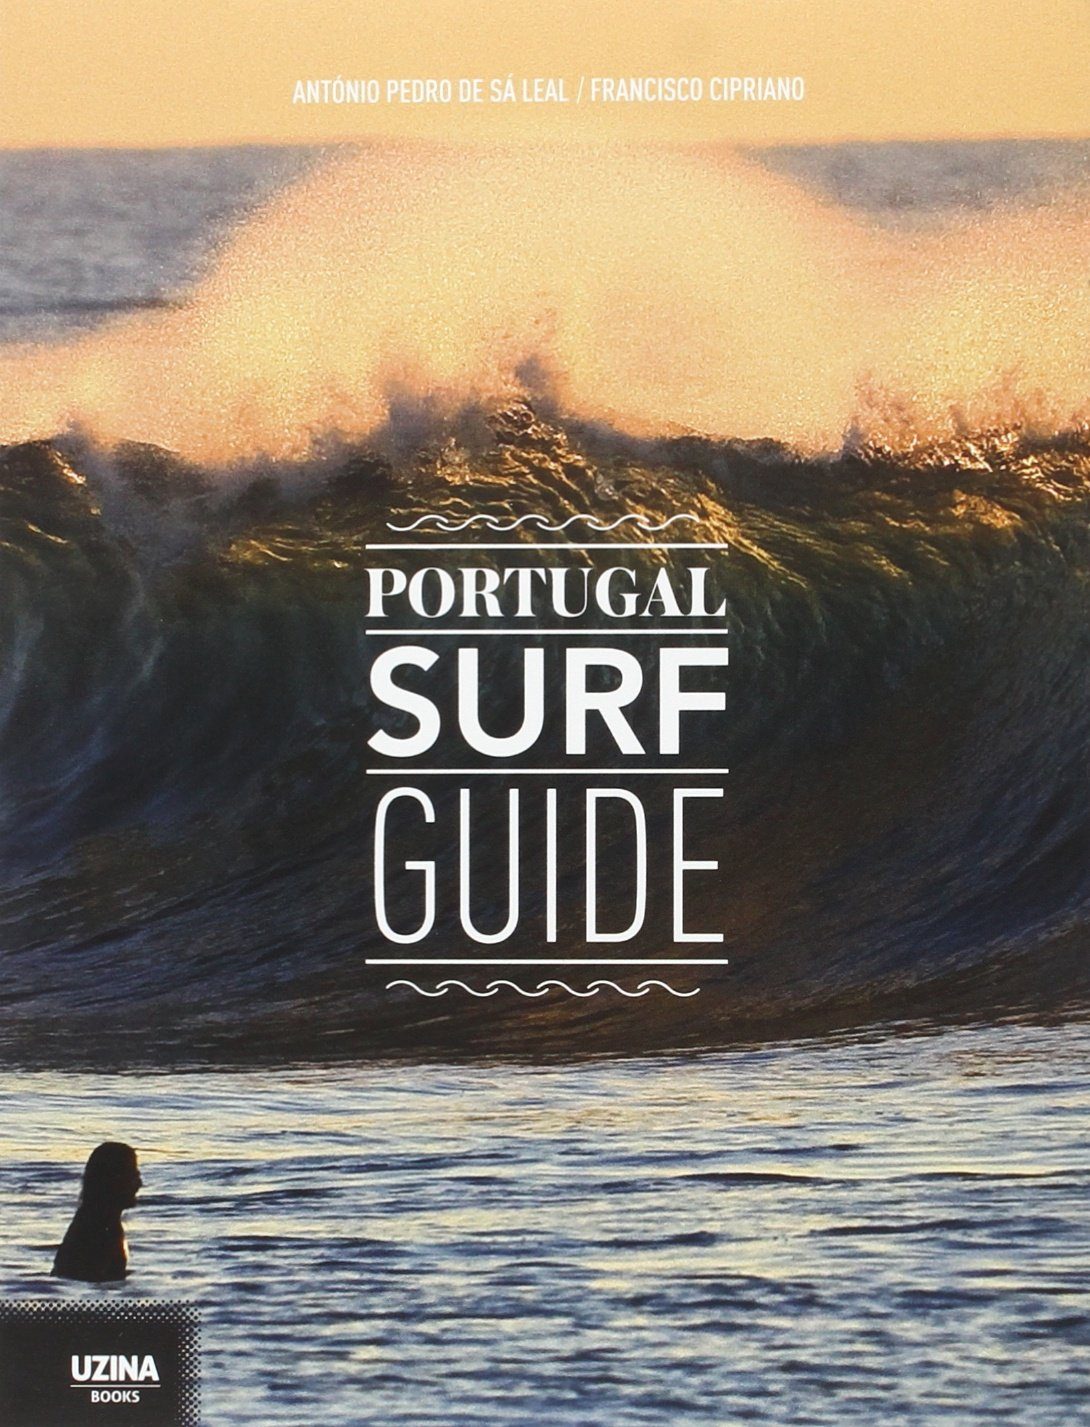 Portugal Surf Guide: Amazon.es: Neves, José Manuel das: Libros en idiomas extranjeros